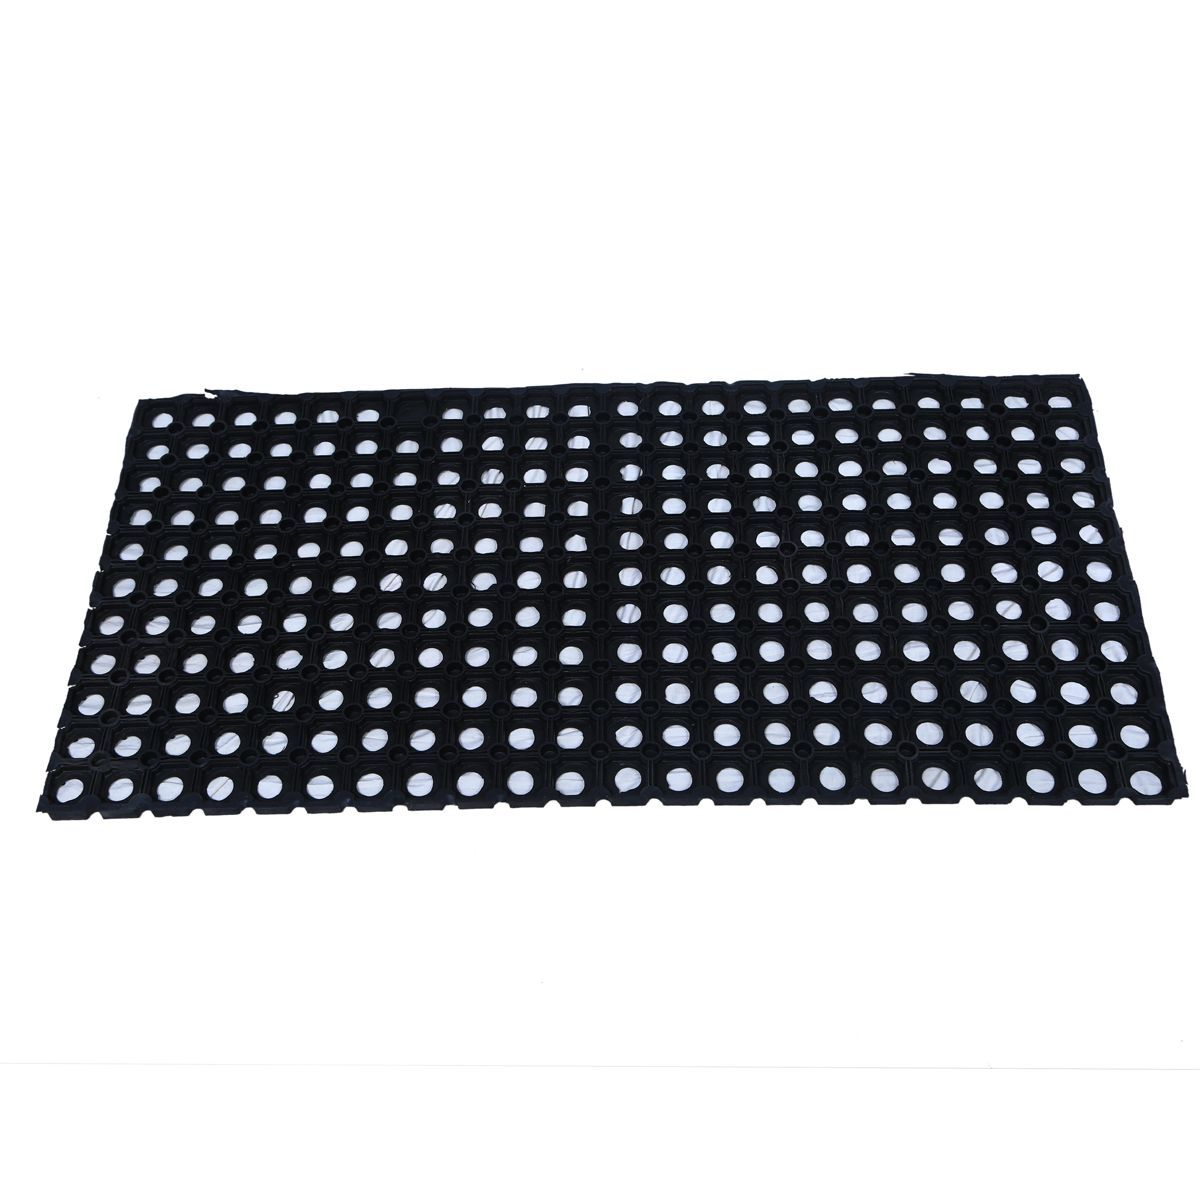 Kuber Industries™ Dirt Rubb Off Clean Footwear Thick Rubber Doormat for Offices,Hotel ,Restaurant, Home,Shop Color-Black (Extra Large Size : 100 cm x 52 cm x 2 cm)